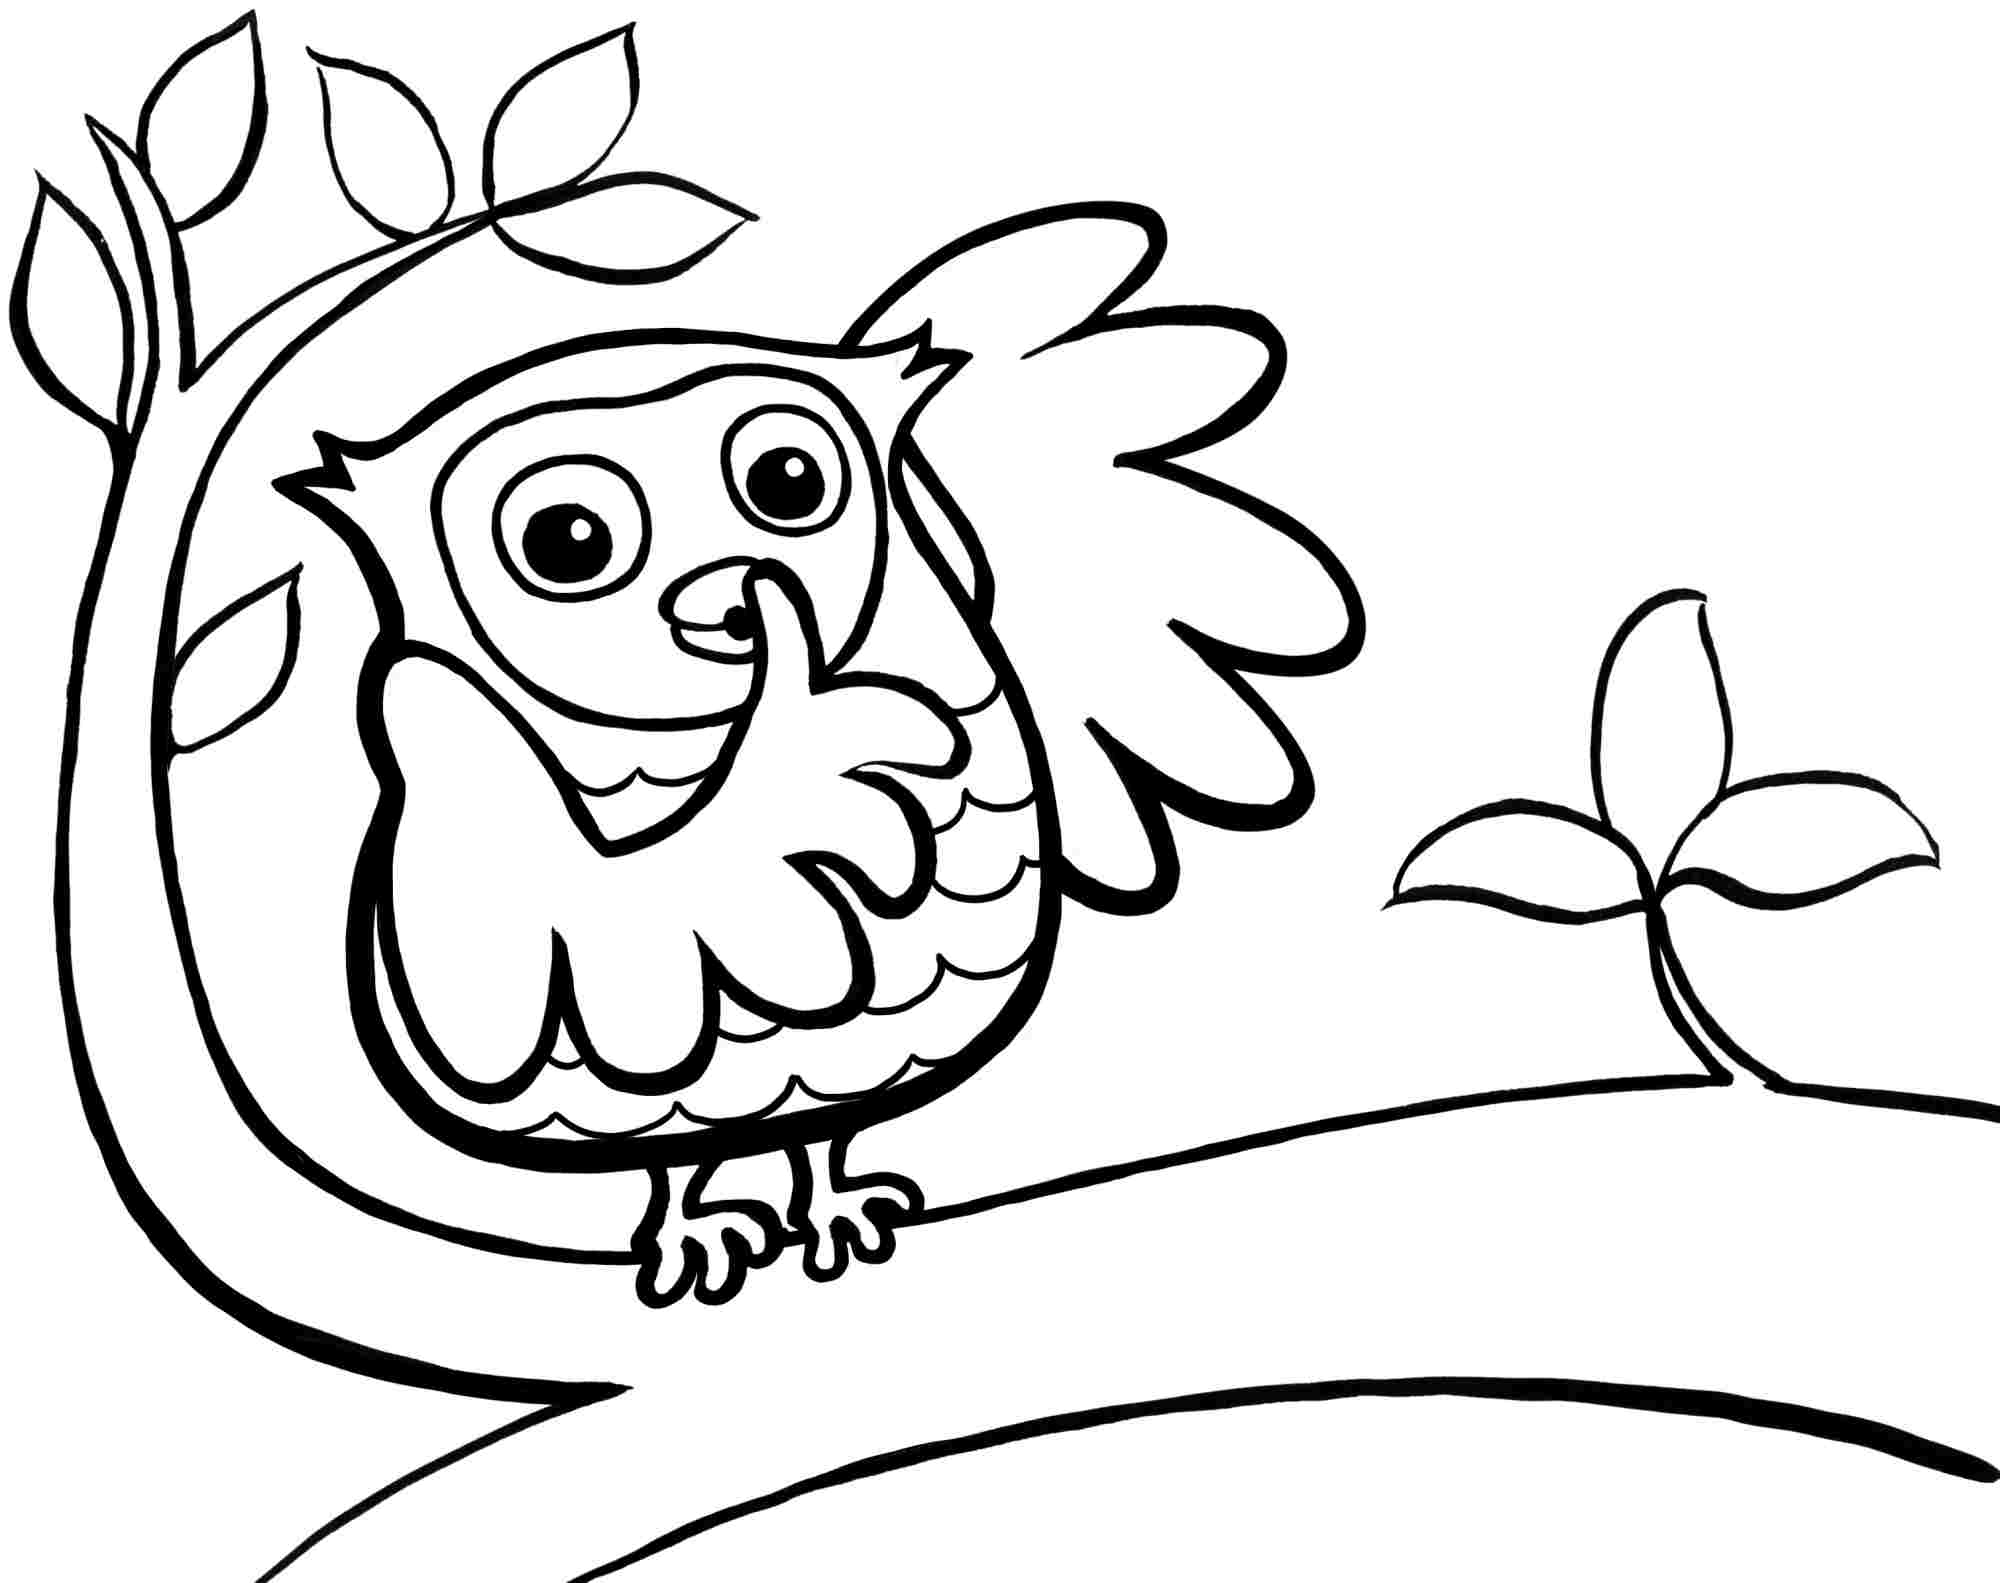 Cute Baby Owl Coloring Pages - Coloring Home